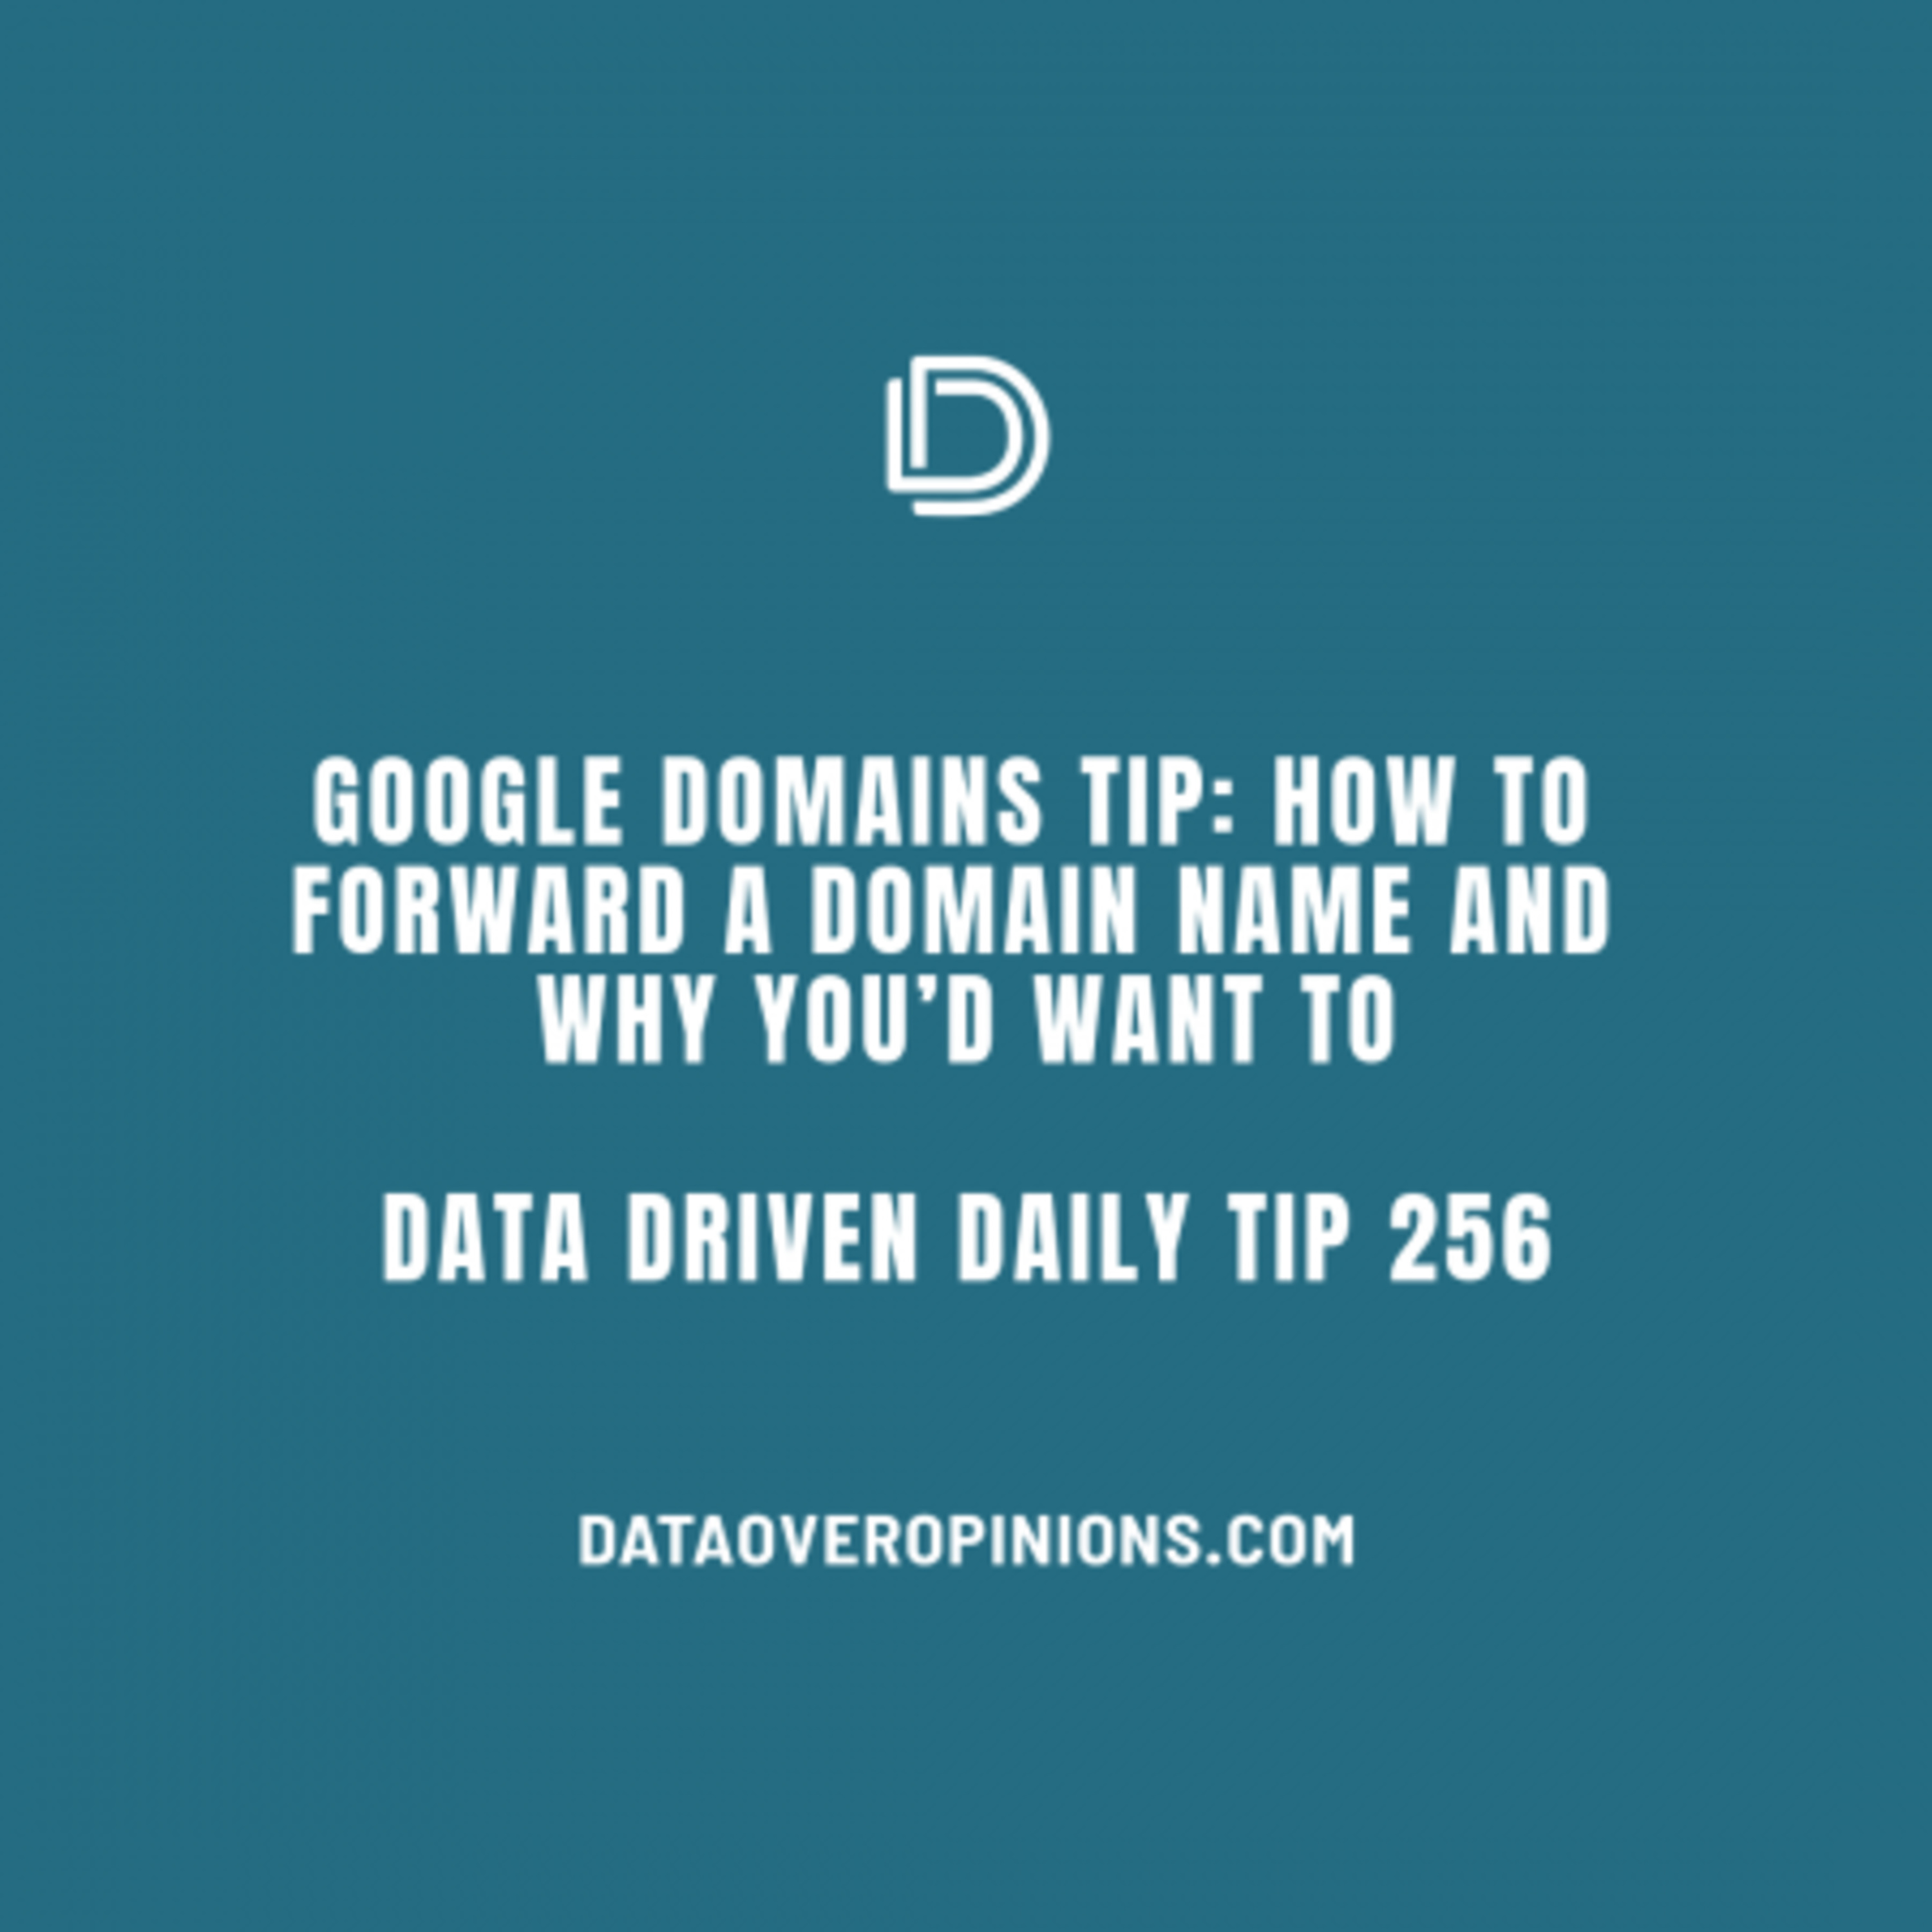 Ep.134: Google Domains Tip: How To Forward A Domain Name And Why You'd Want To: Data Driven Daily Tip 256